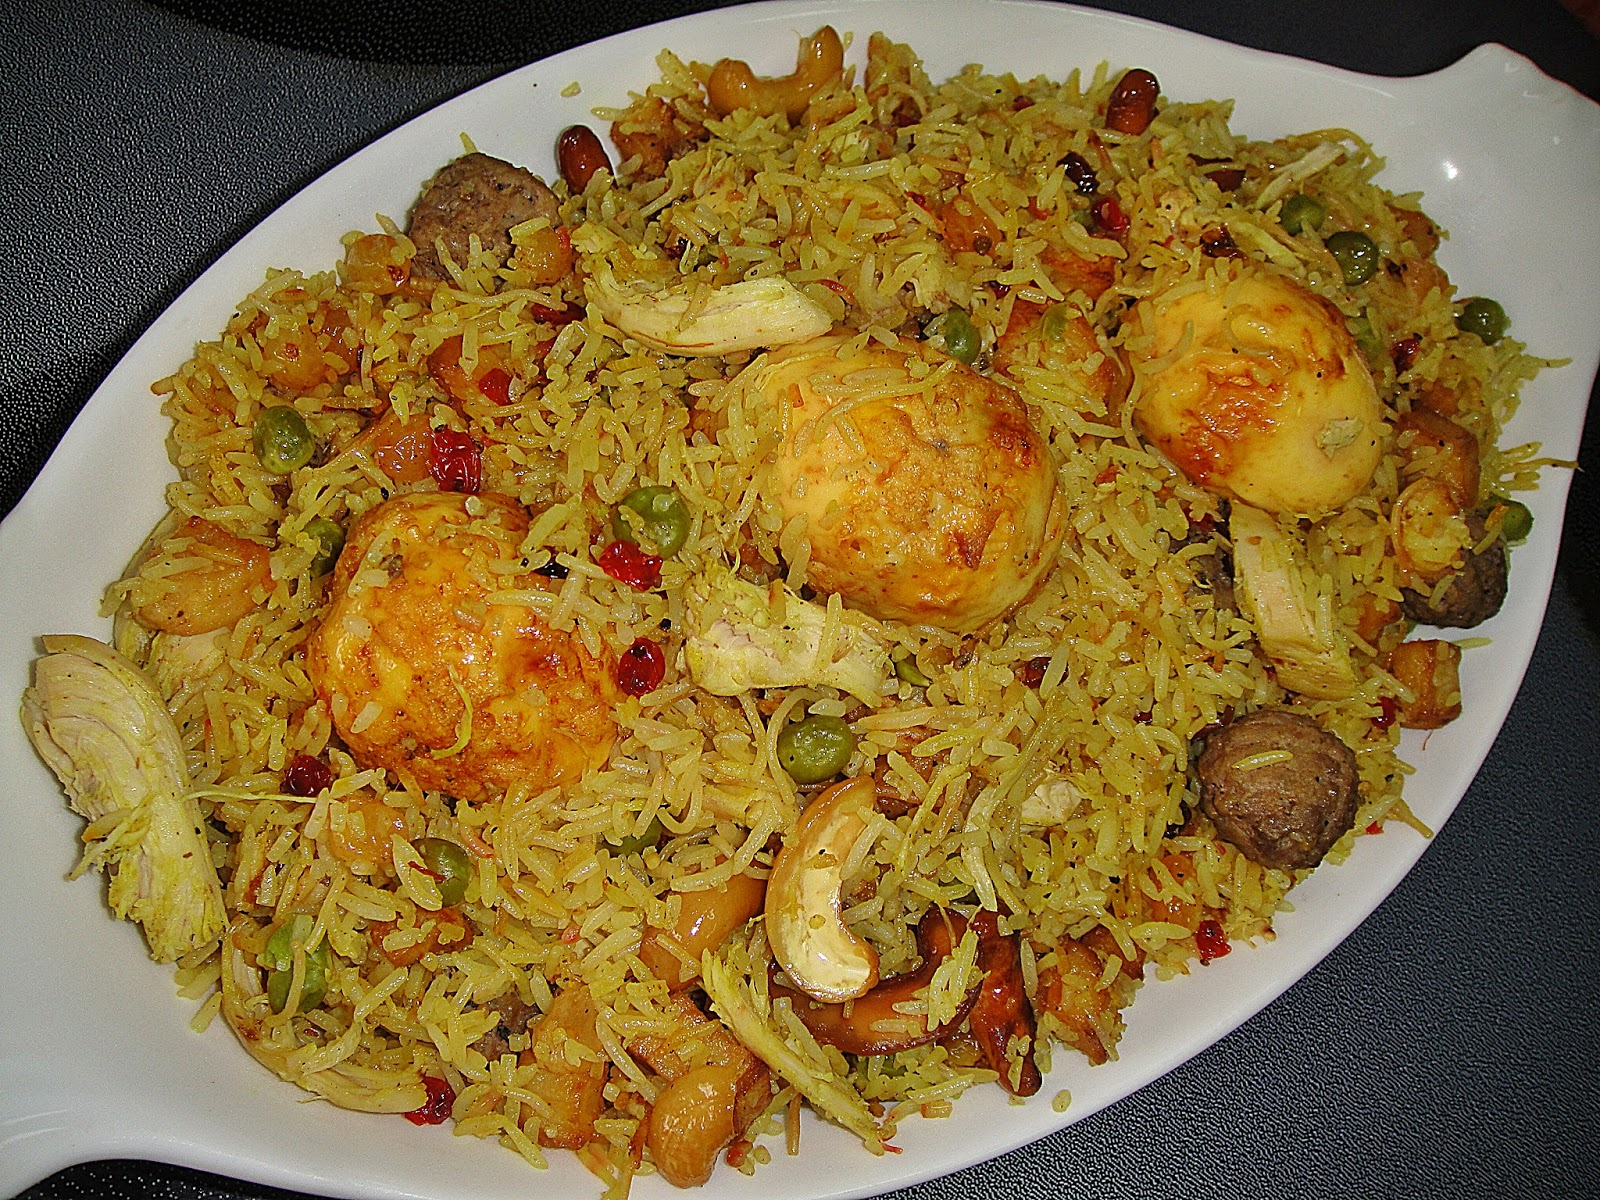 Traditional Home Plans Maryam S Culinary Wonders 376 Iraqi Biryani Rice